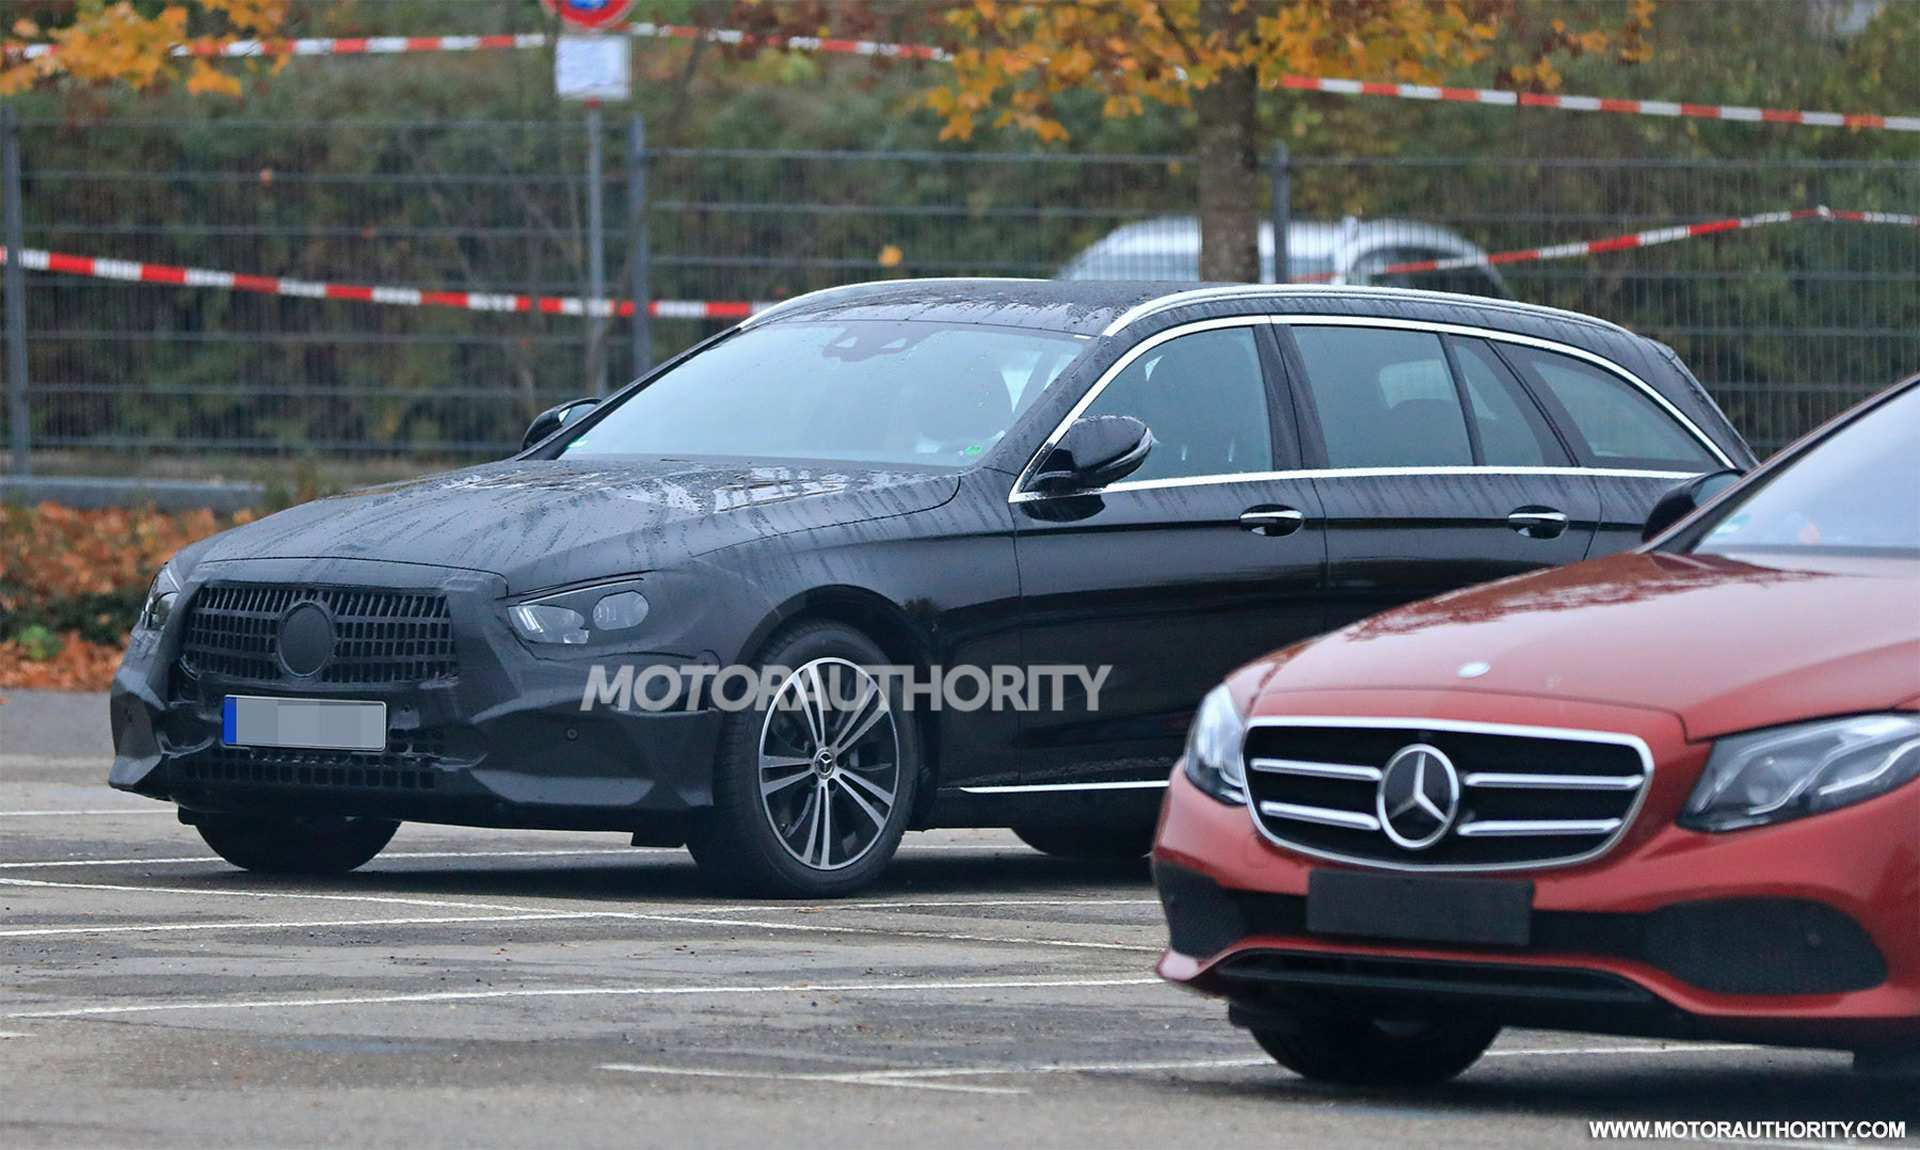 68 New 2020 The Spy Shots Mercedes E Class Engine